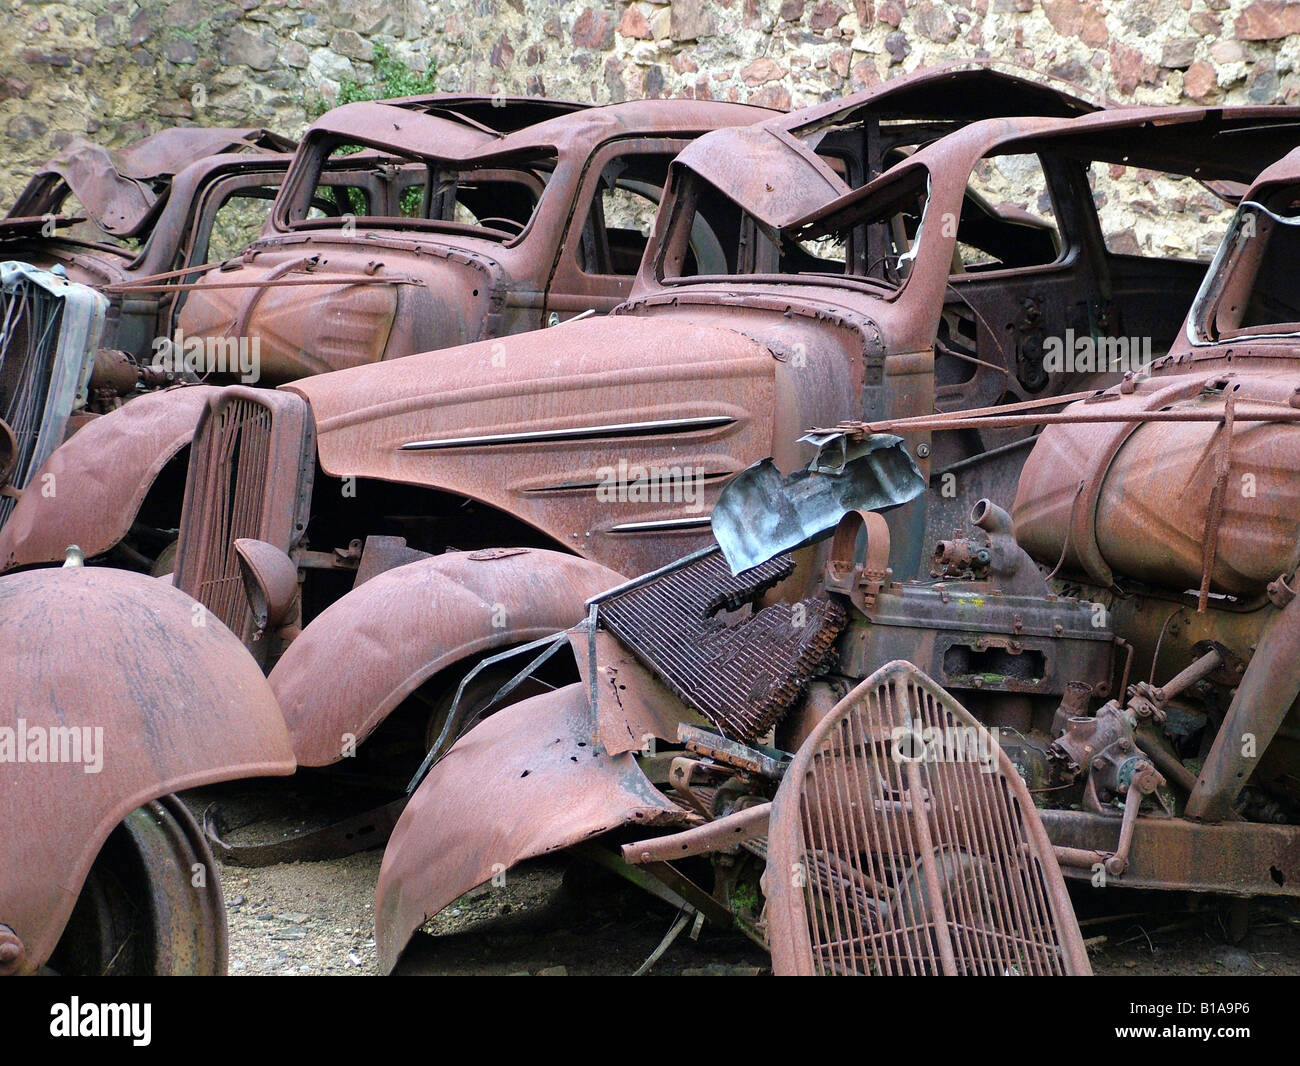 Rusty old classic cars Stock Photo, Royalty Free Image: 18052222 - Alamy